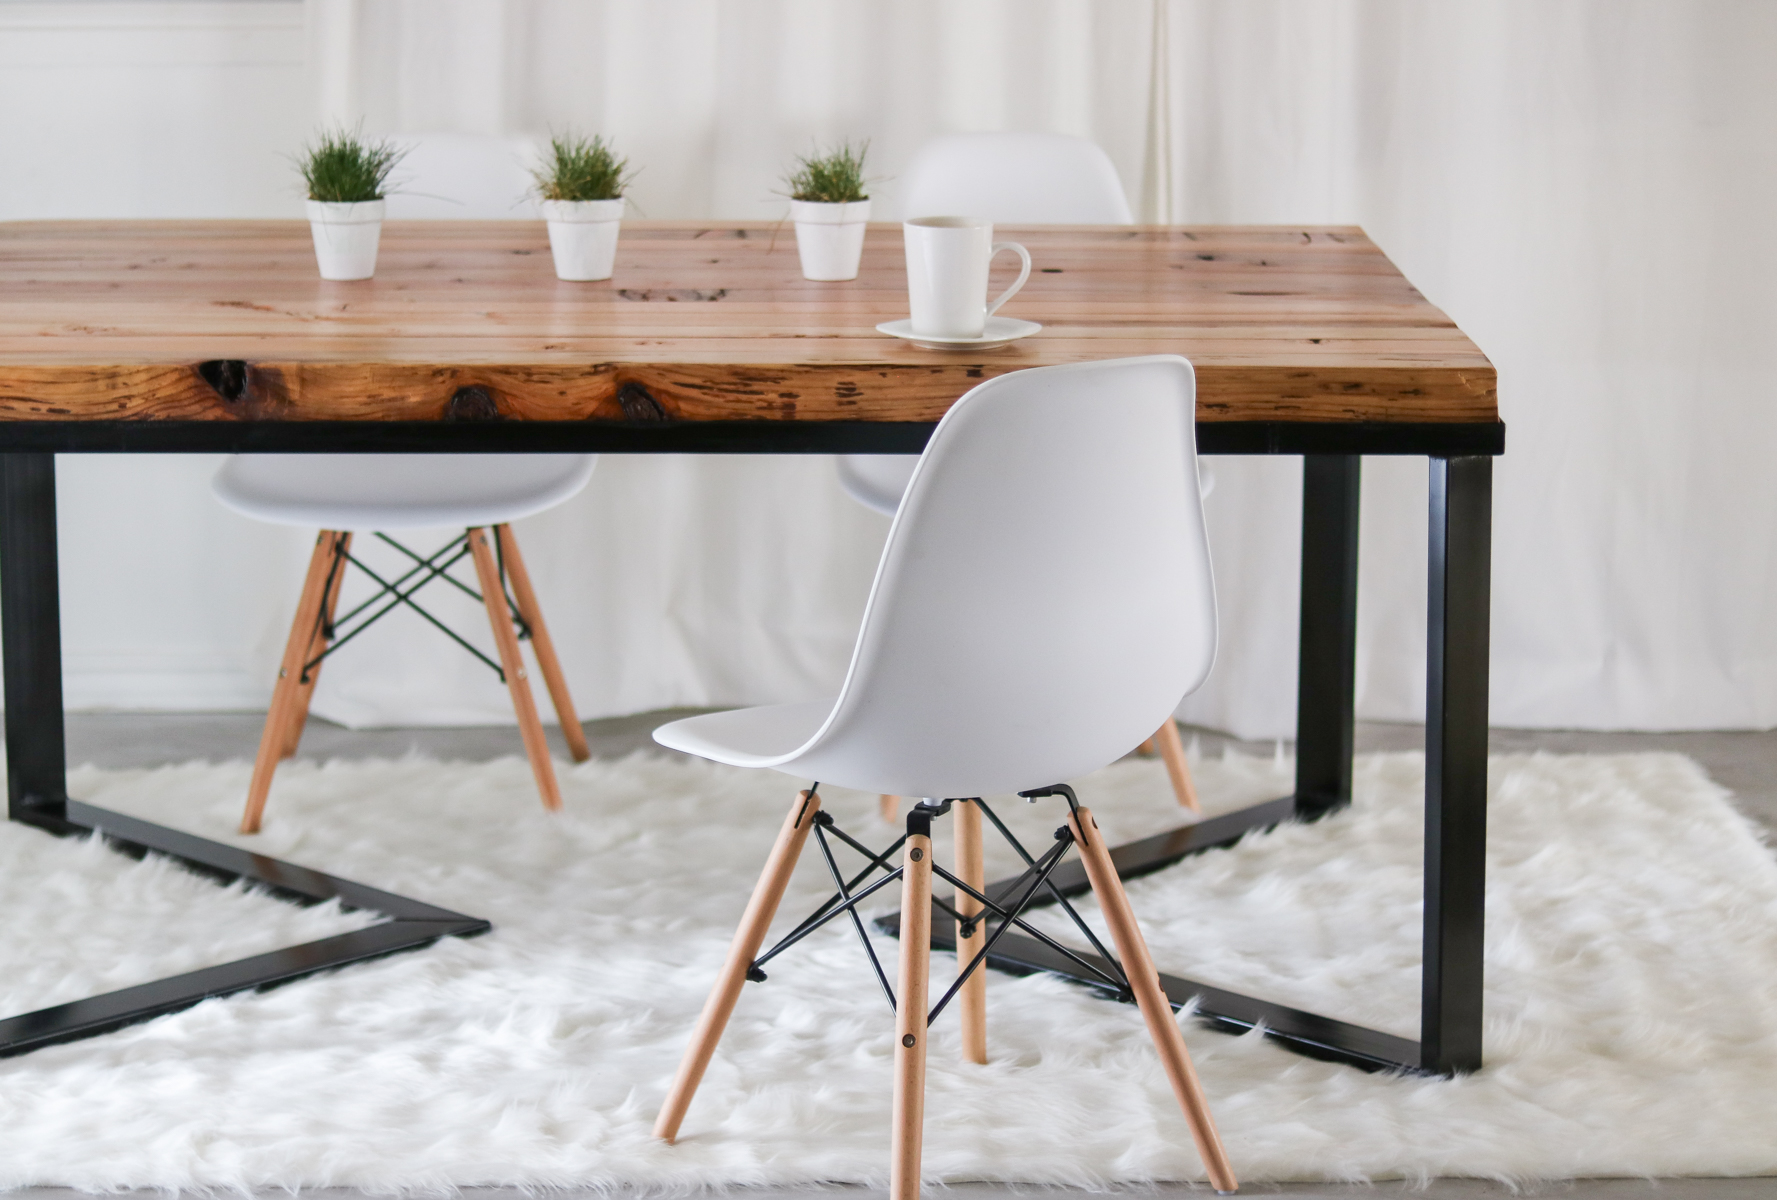 Awe Inspiring How I Made My Dining Table Under 60 Diy Table Scandinavian Inzonedesignstudio Interior Chair Design Inzonedesignstudiocom